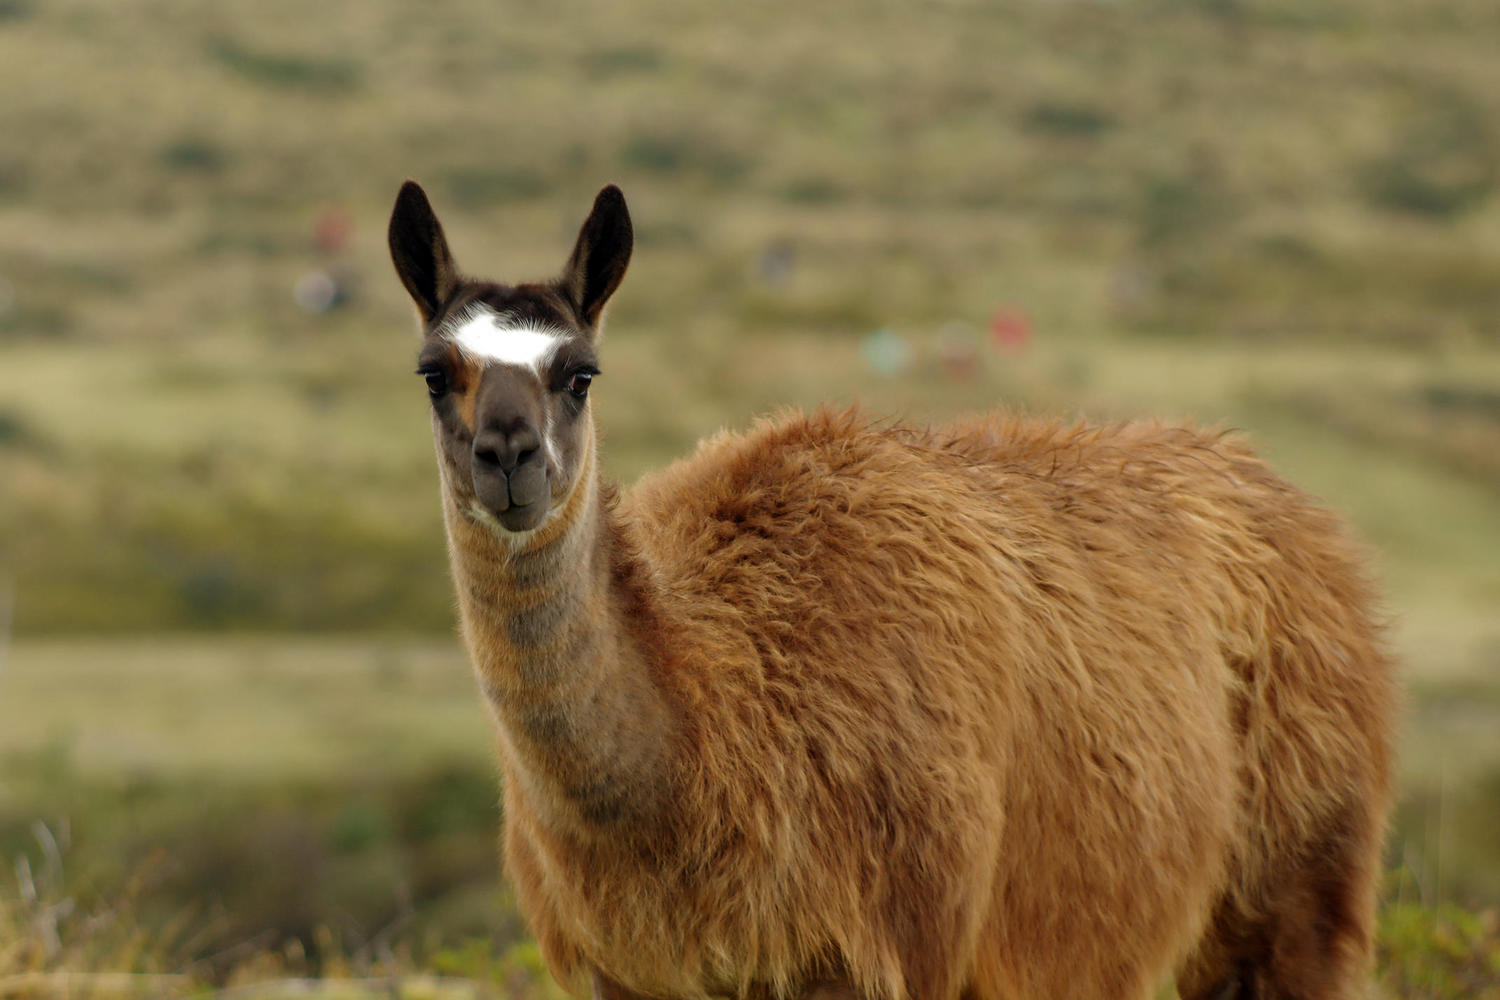 Llama with some impressive ears on the edge of Cotopaxi National Park